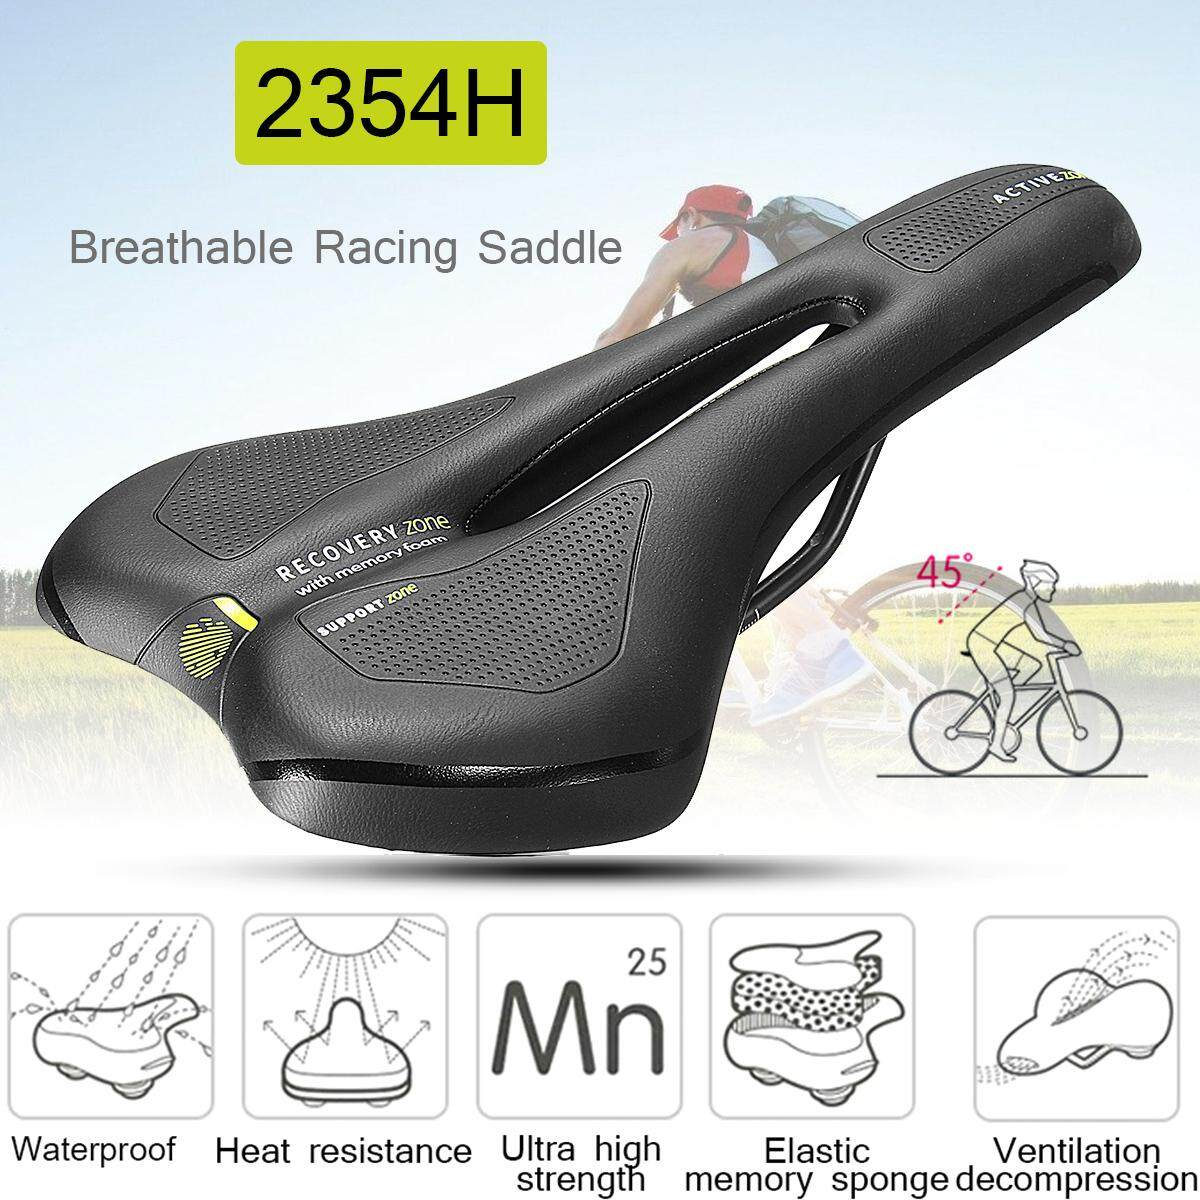 Selle Royal Bicycle Saddle Comfort Breathable Sr Racing Saddle For Mtb Road Bike - Intl By Audew.